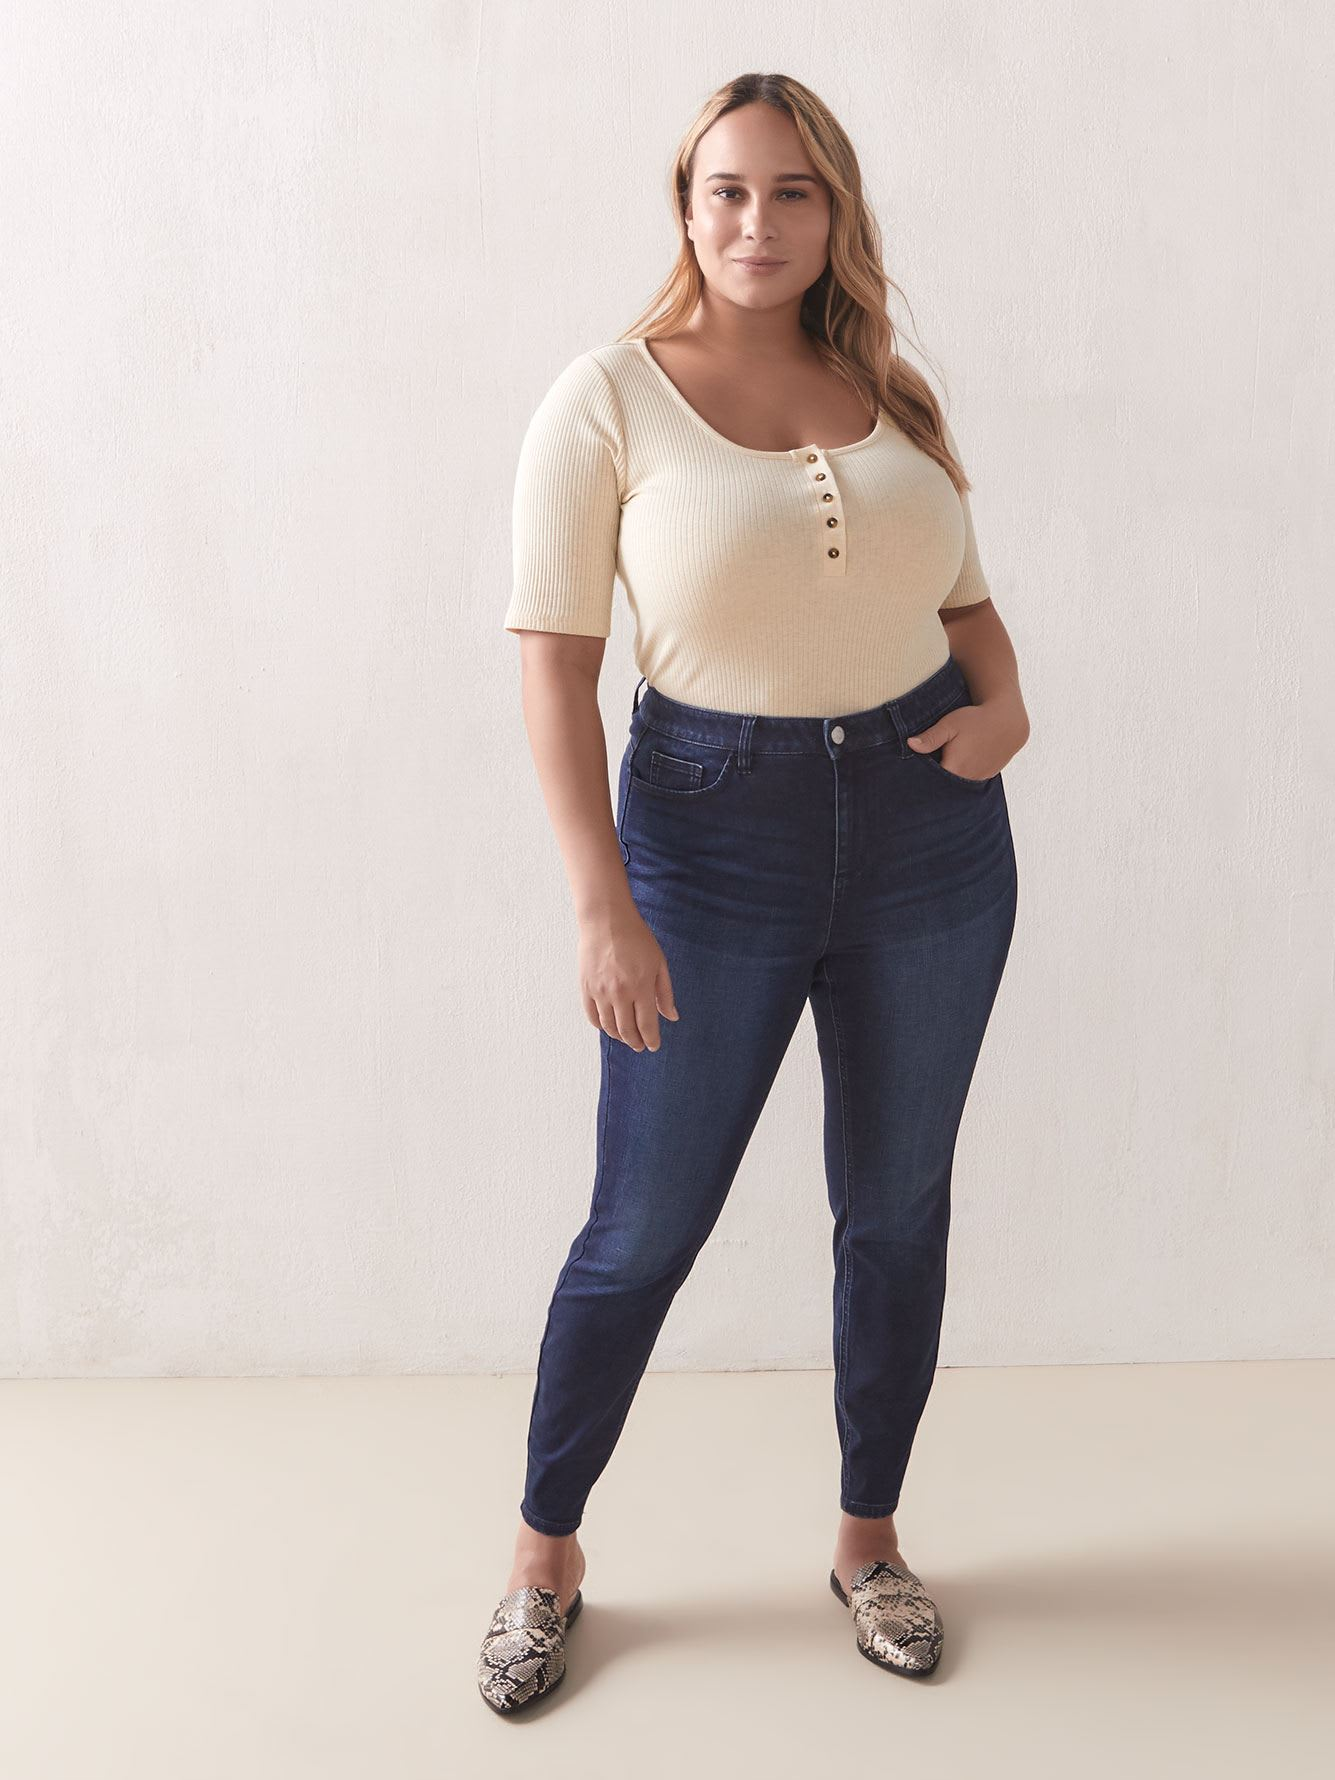 Short-Sleeve Henley Ribbed Top - Addition Elle